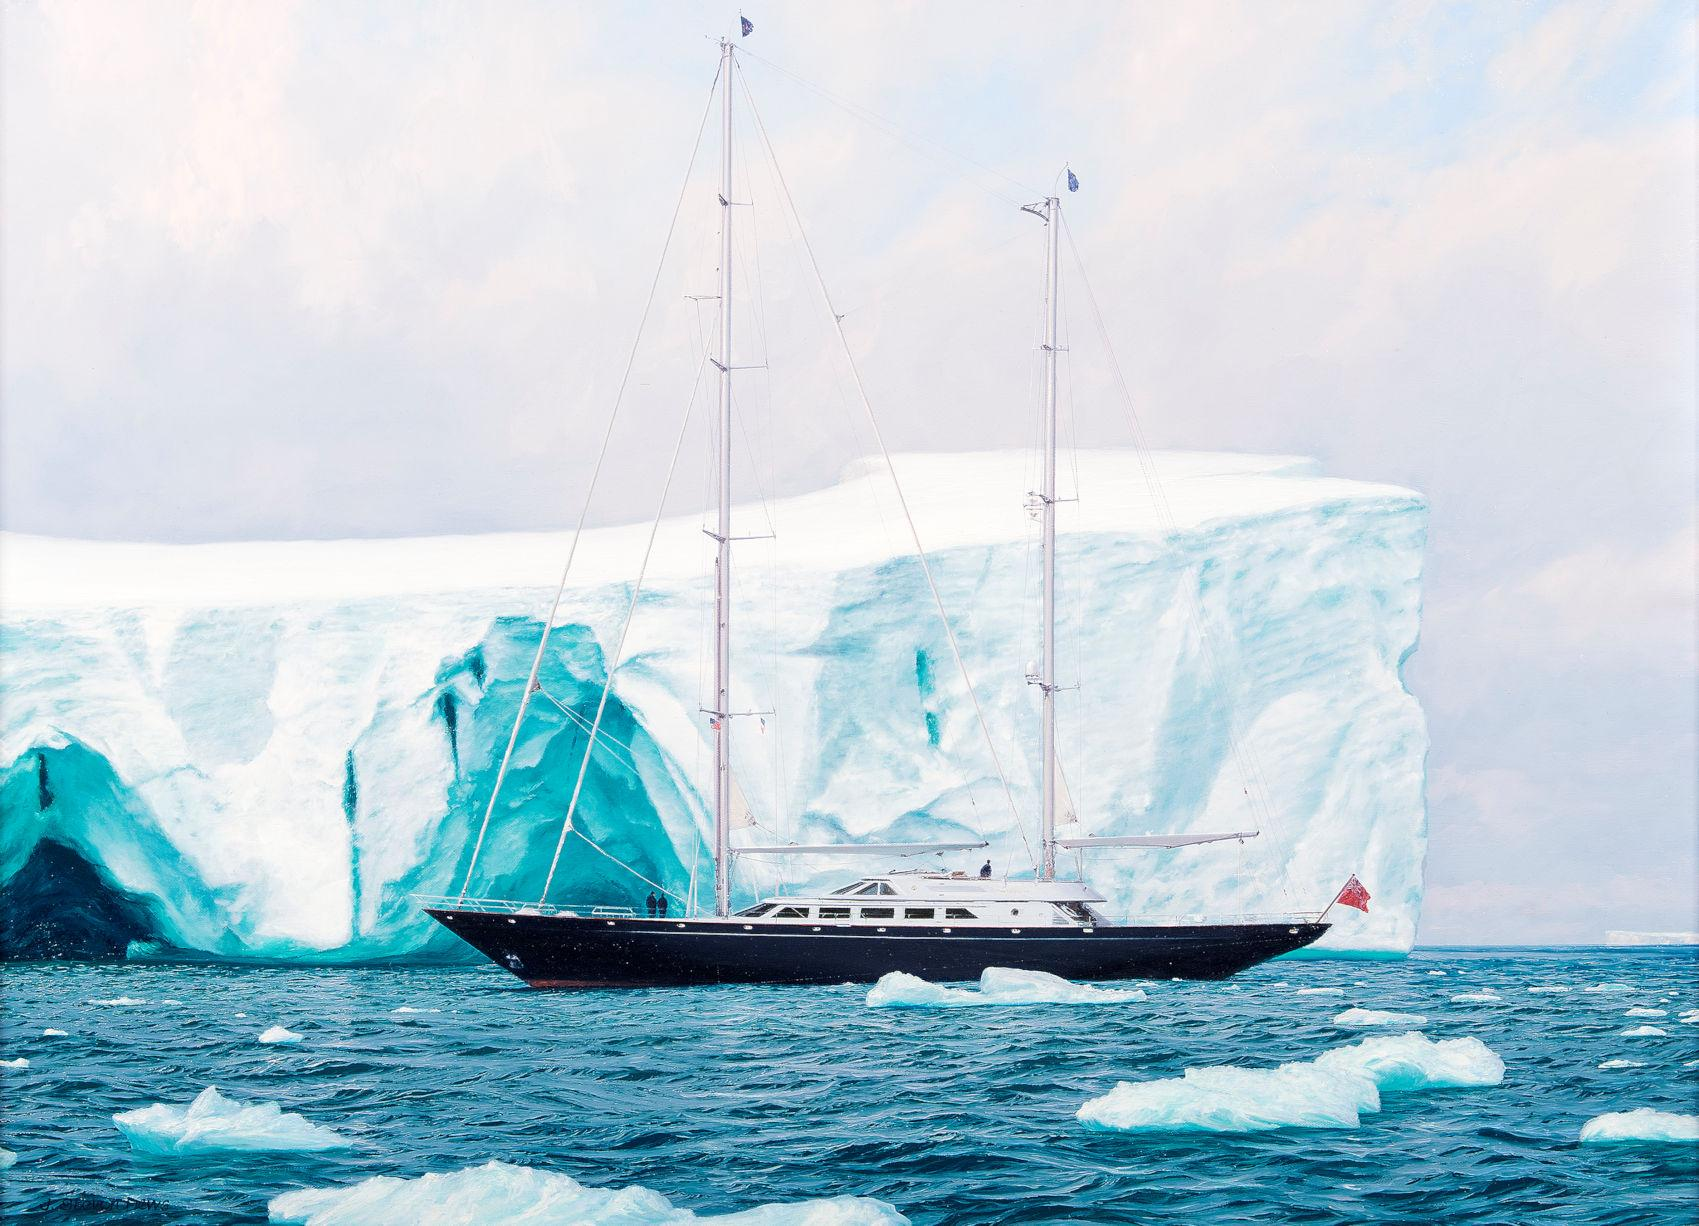 A Sailboat in the Arctic